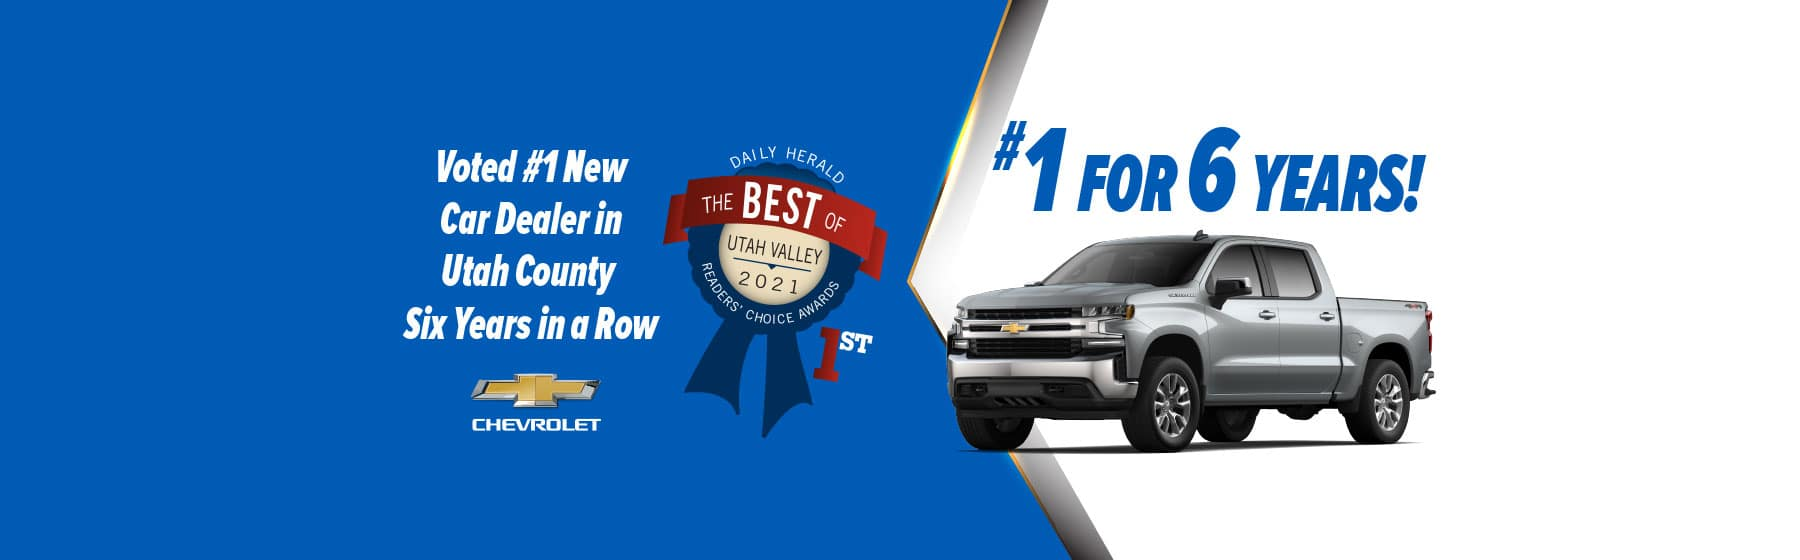 Doug Smith Chevrolet Voted Best of Utah for 6 Years